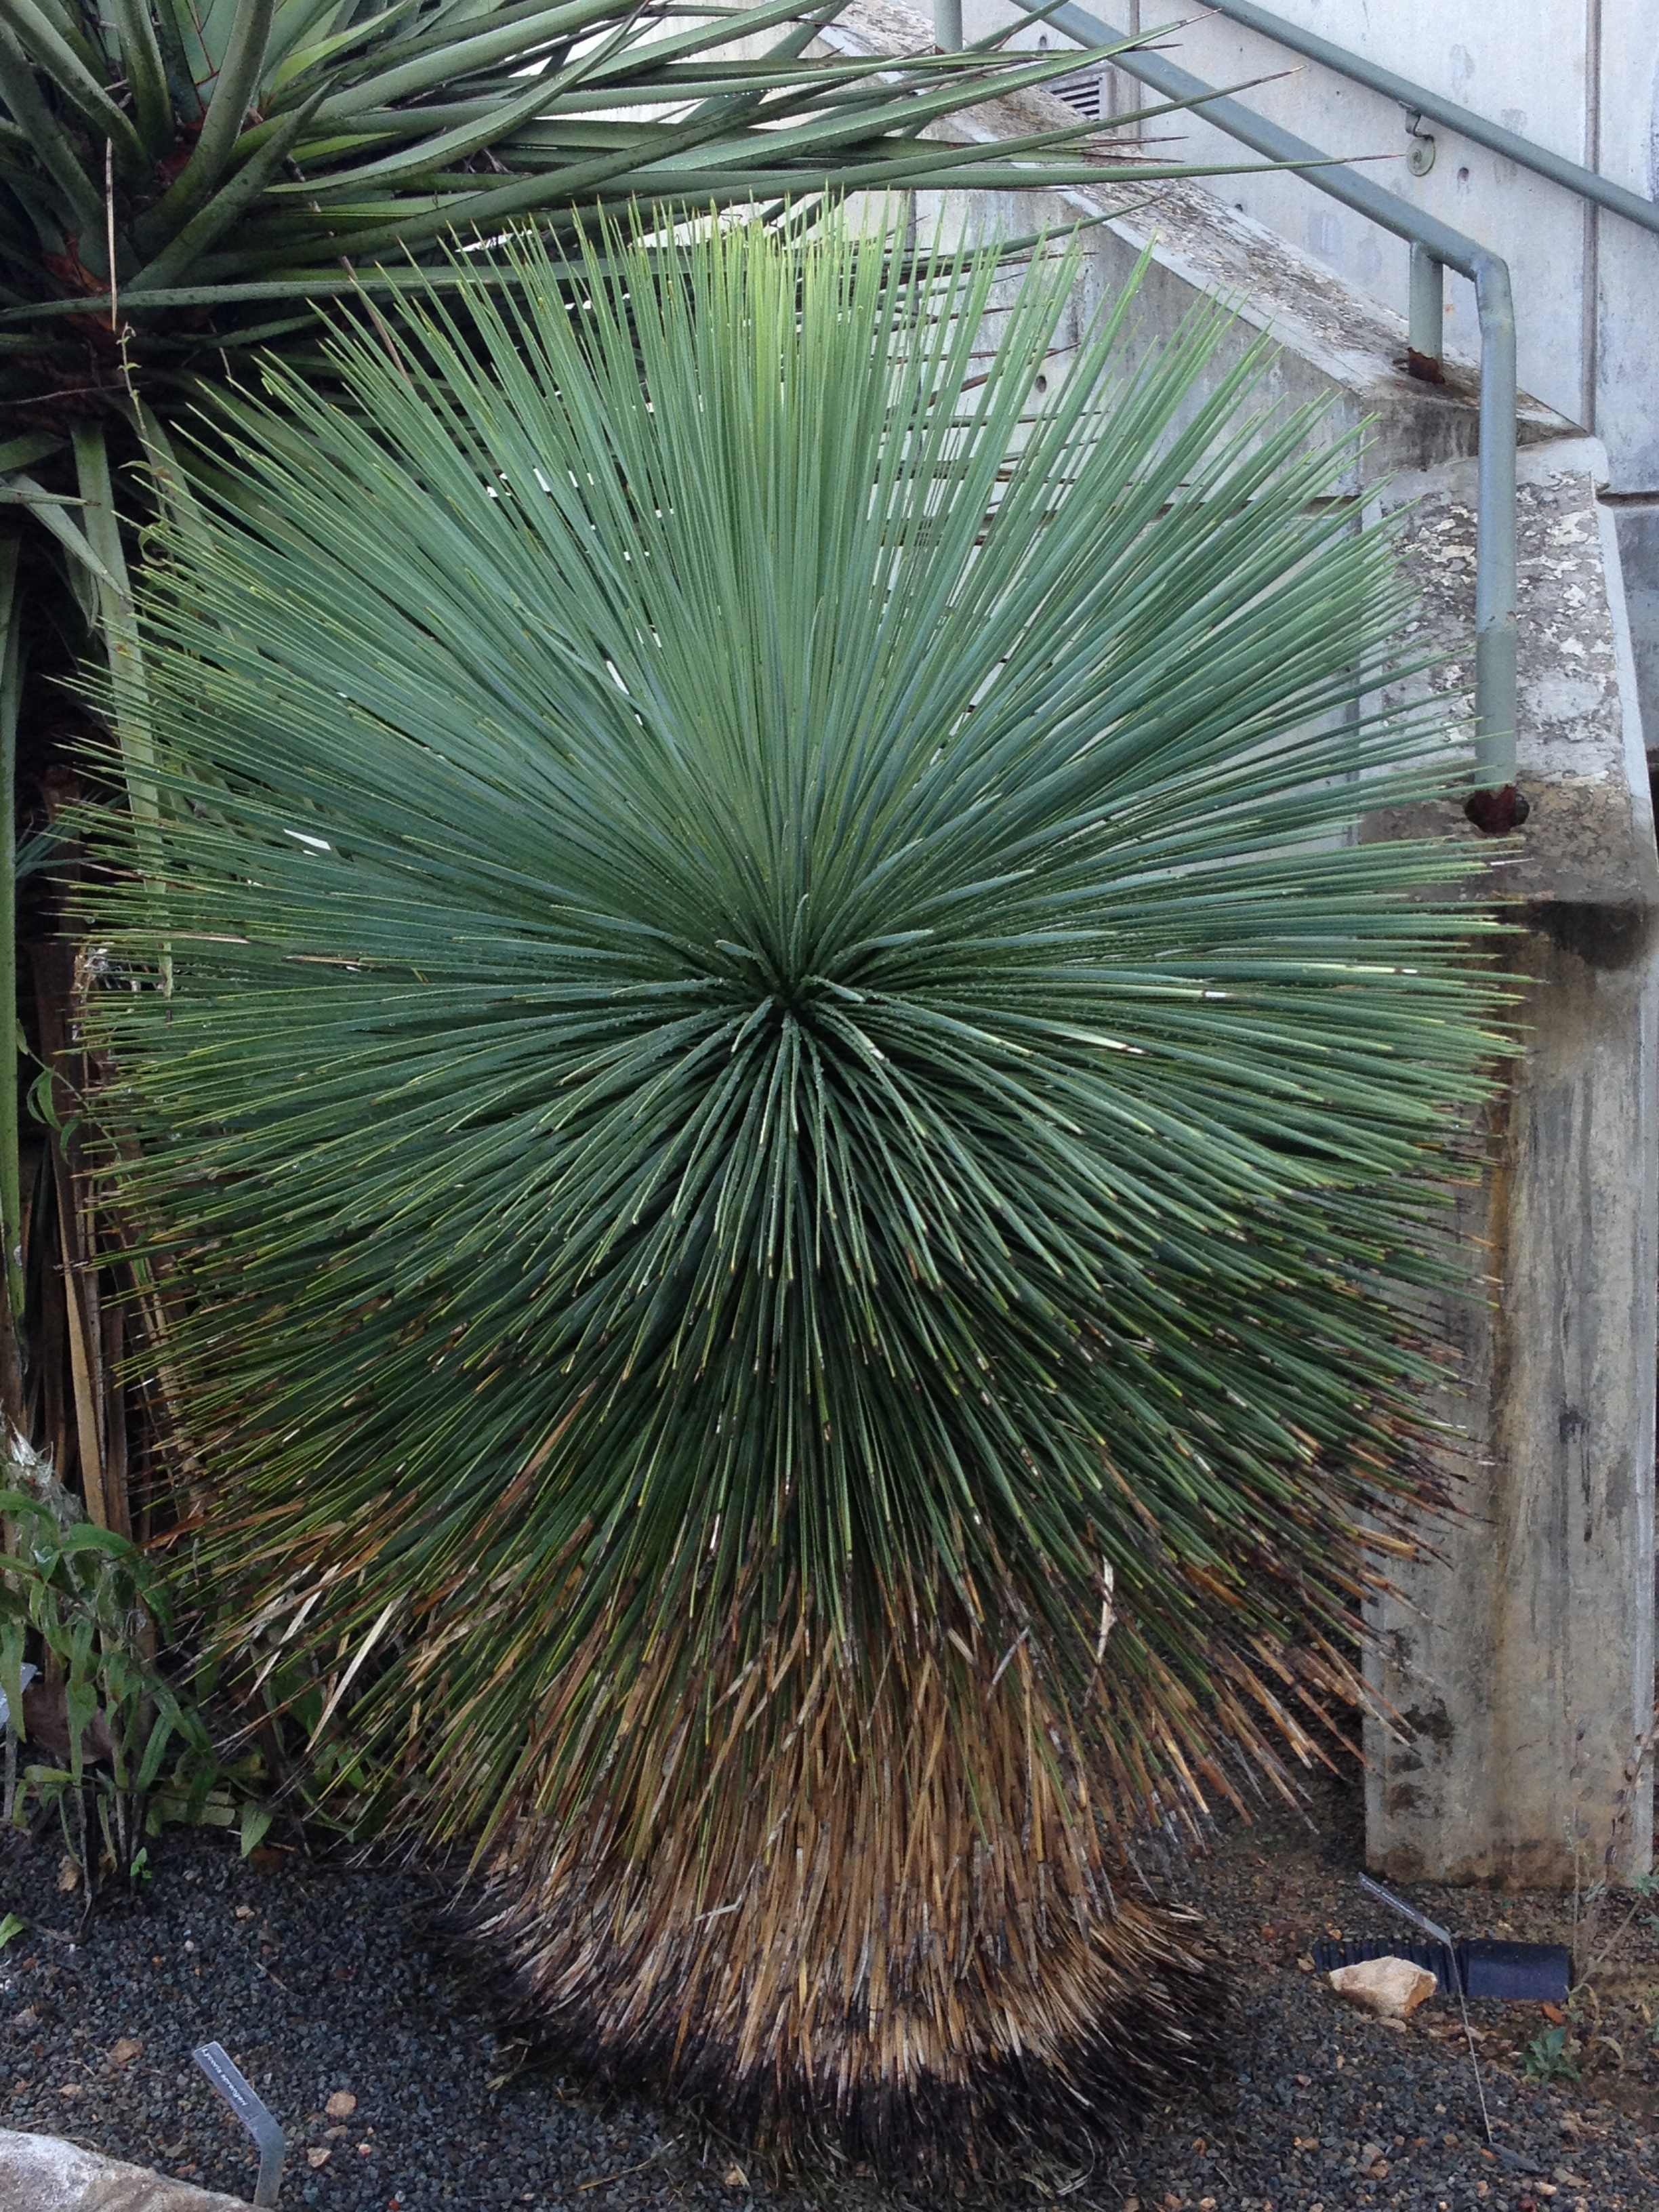 The incredible form of this tree yucca makes a strong statement in the landscape.